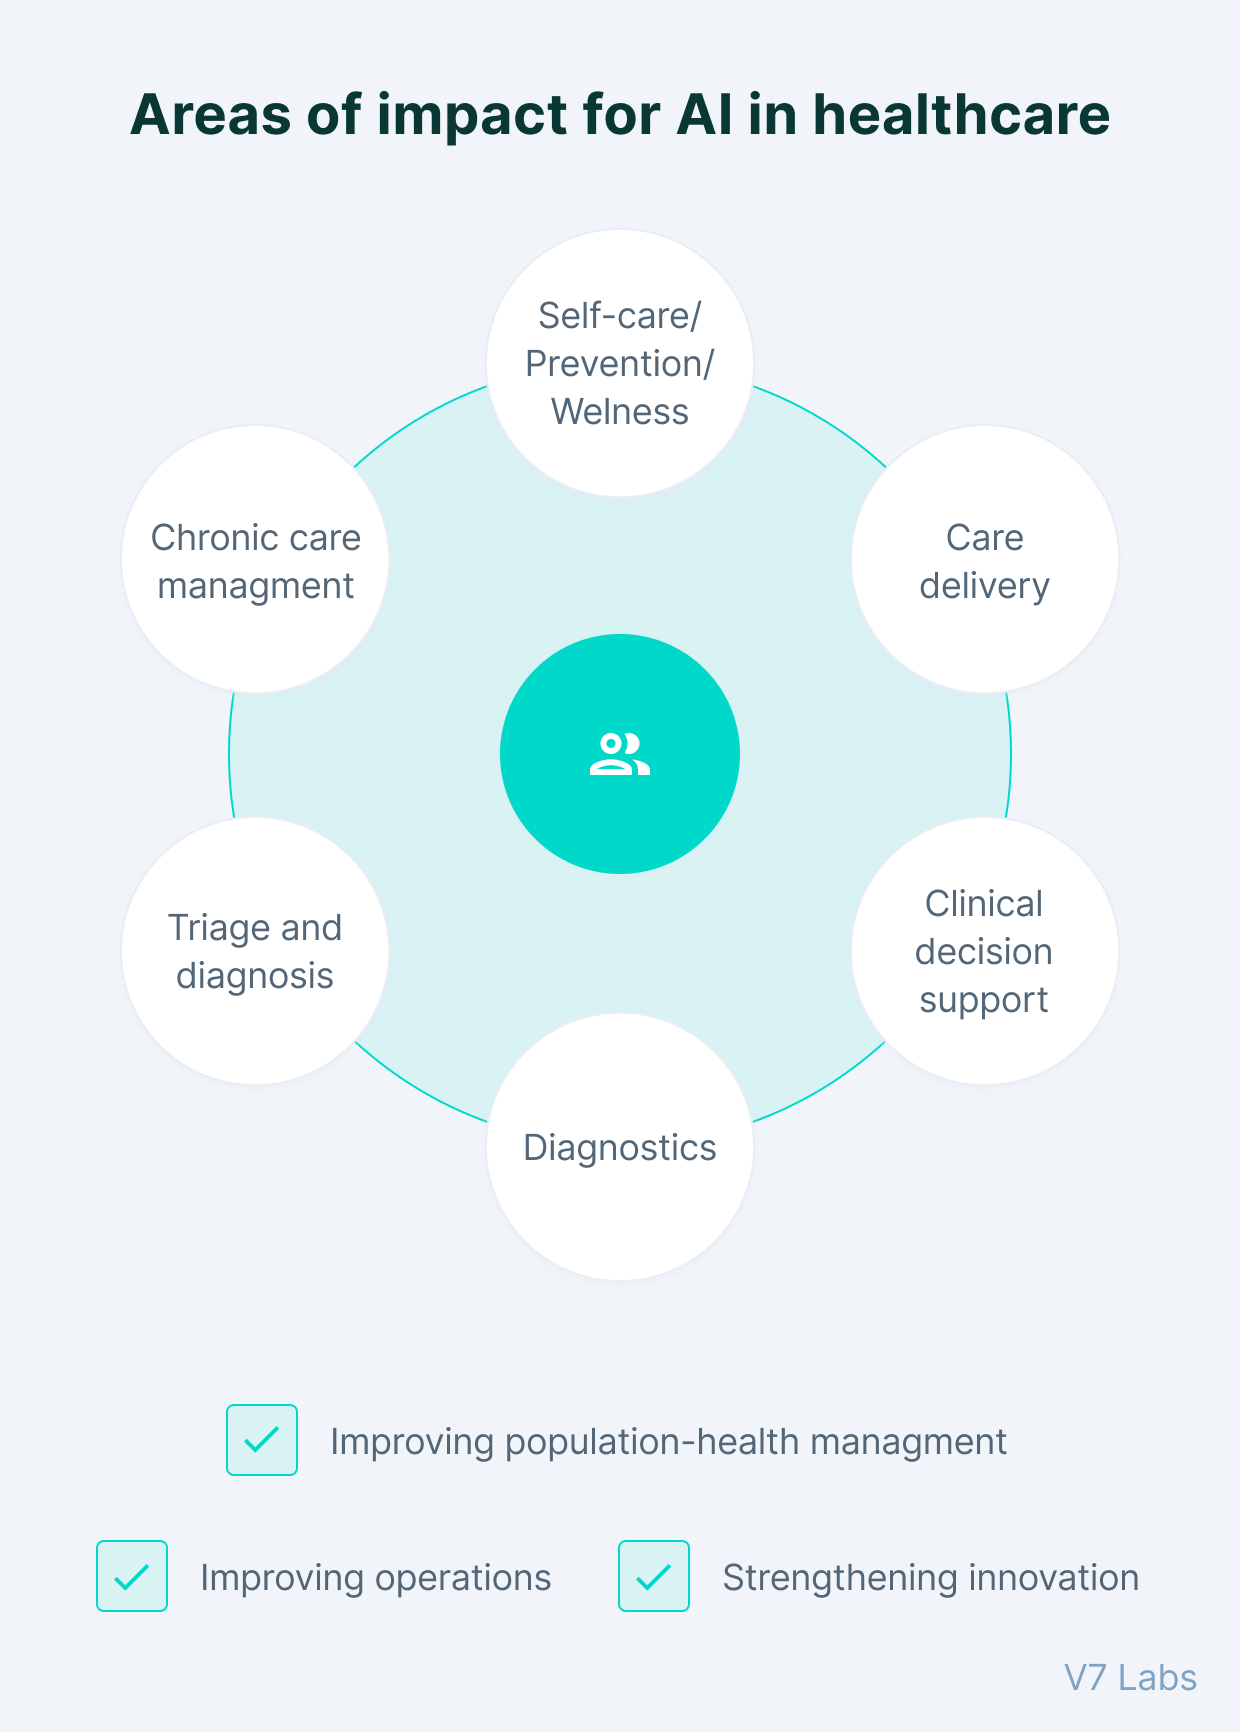 Areas of impact for AI in healthcare